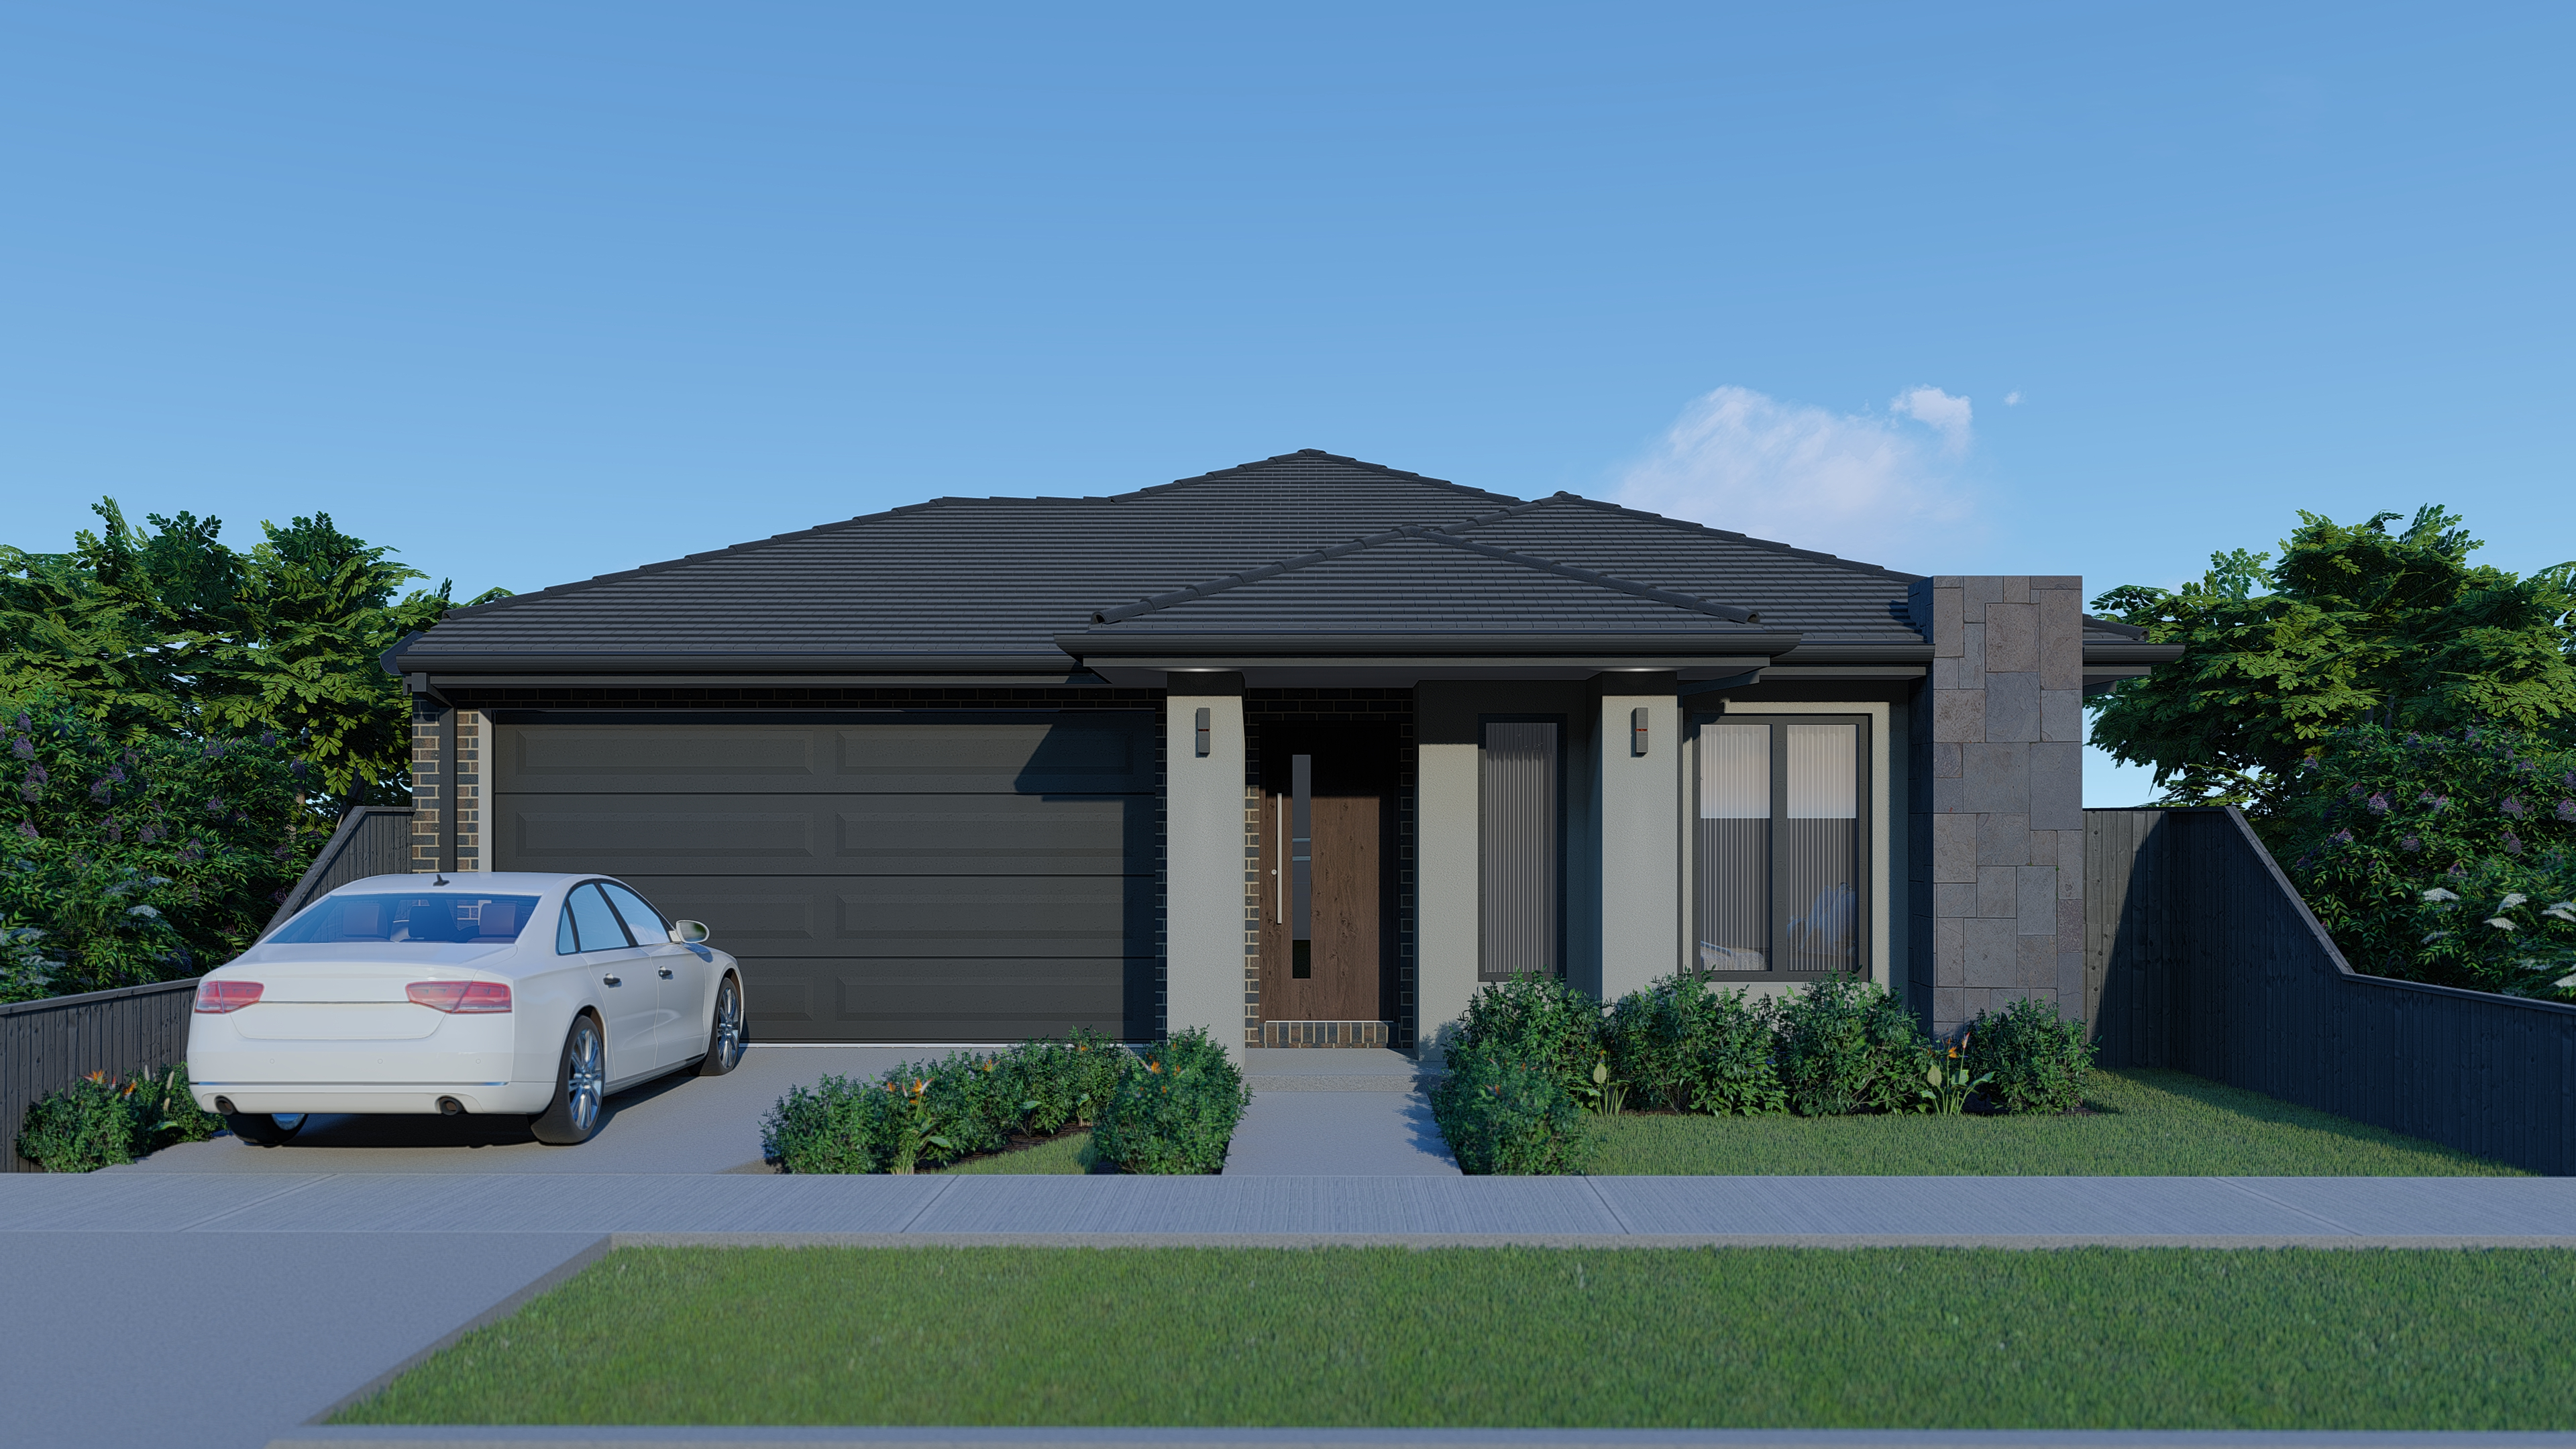 Hawkeye Projects New Home Melbourne Echuca Bluestone Grey Render 23Sq